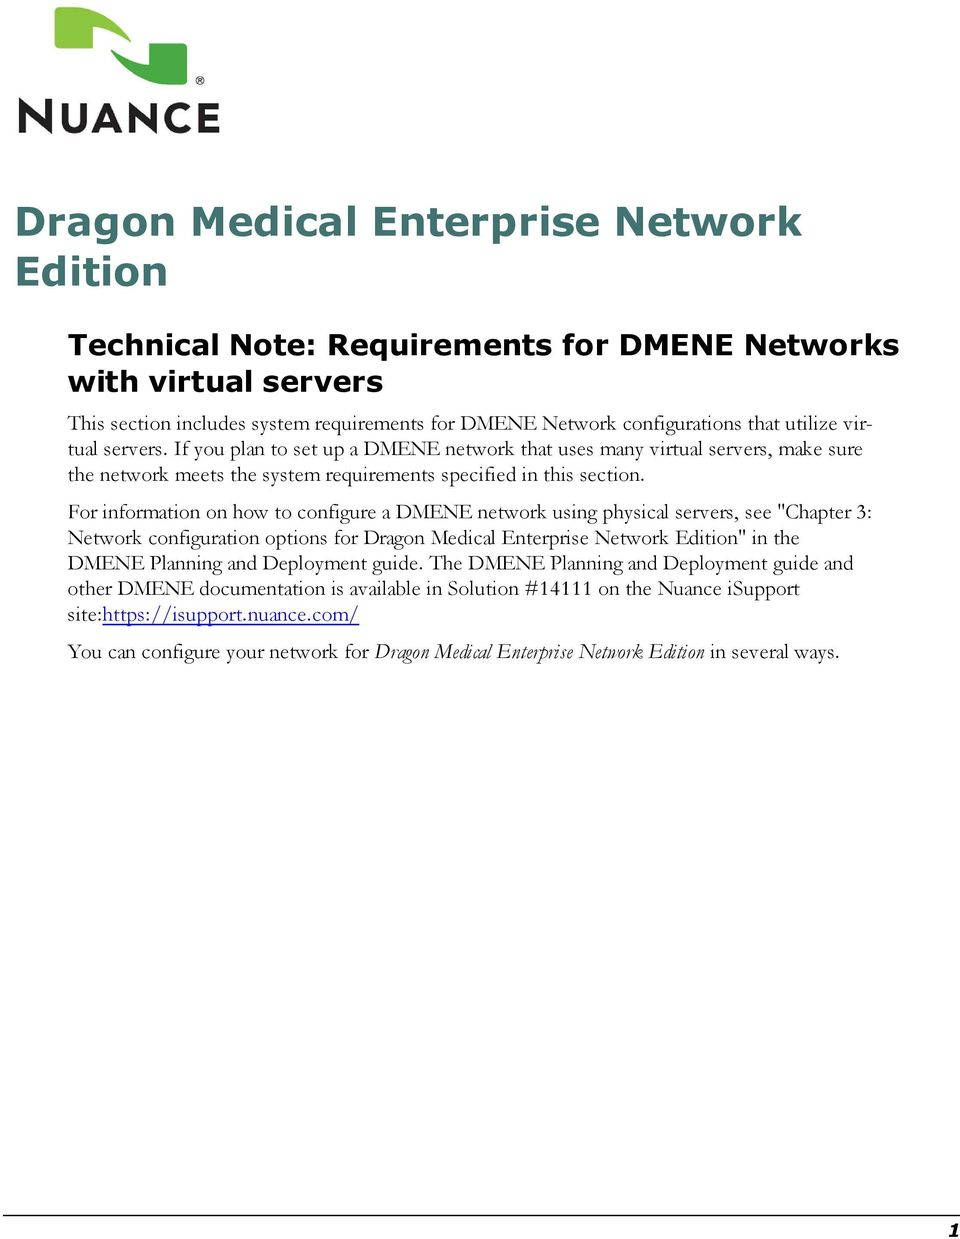 "For information on how to configure a DMENE network using physical servers, see ""Chapter 3: Network configuration options for Dragon Medical Enterprise Network Edition"" in the DMENE Planning and"